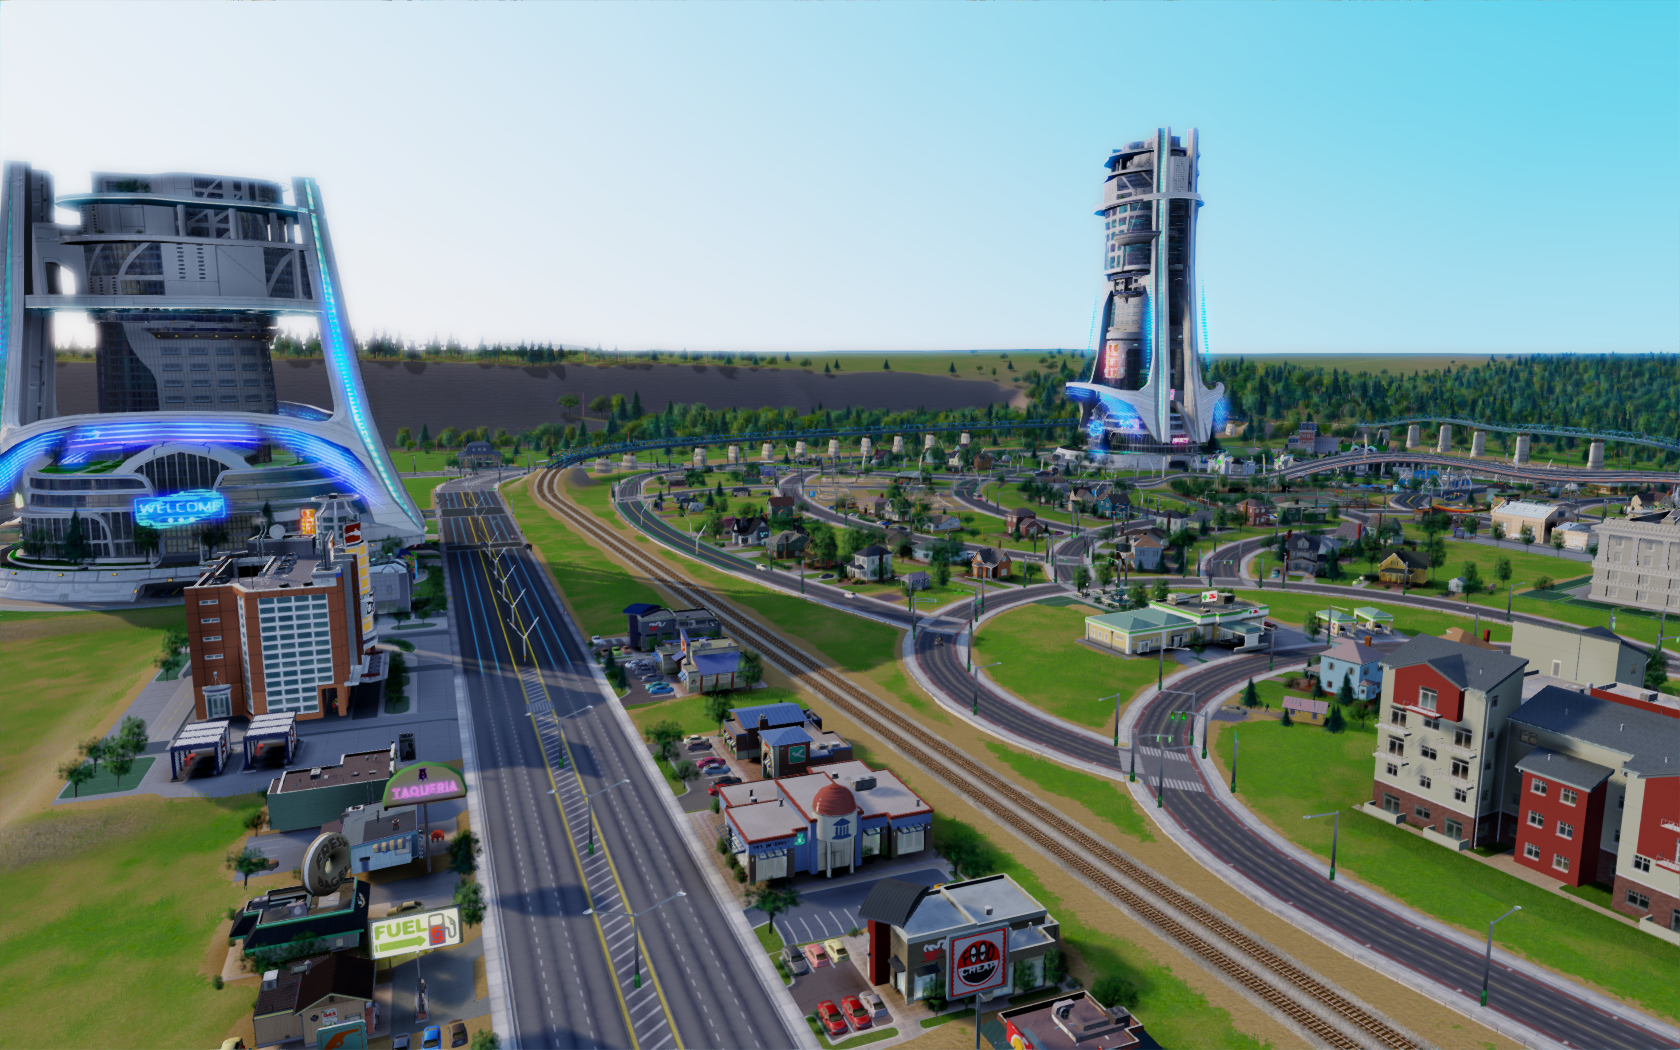 SimCity 2013's creative director explains what went right ...  Simcity 2013